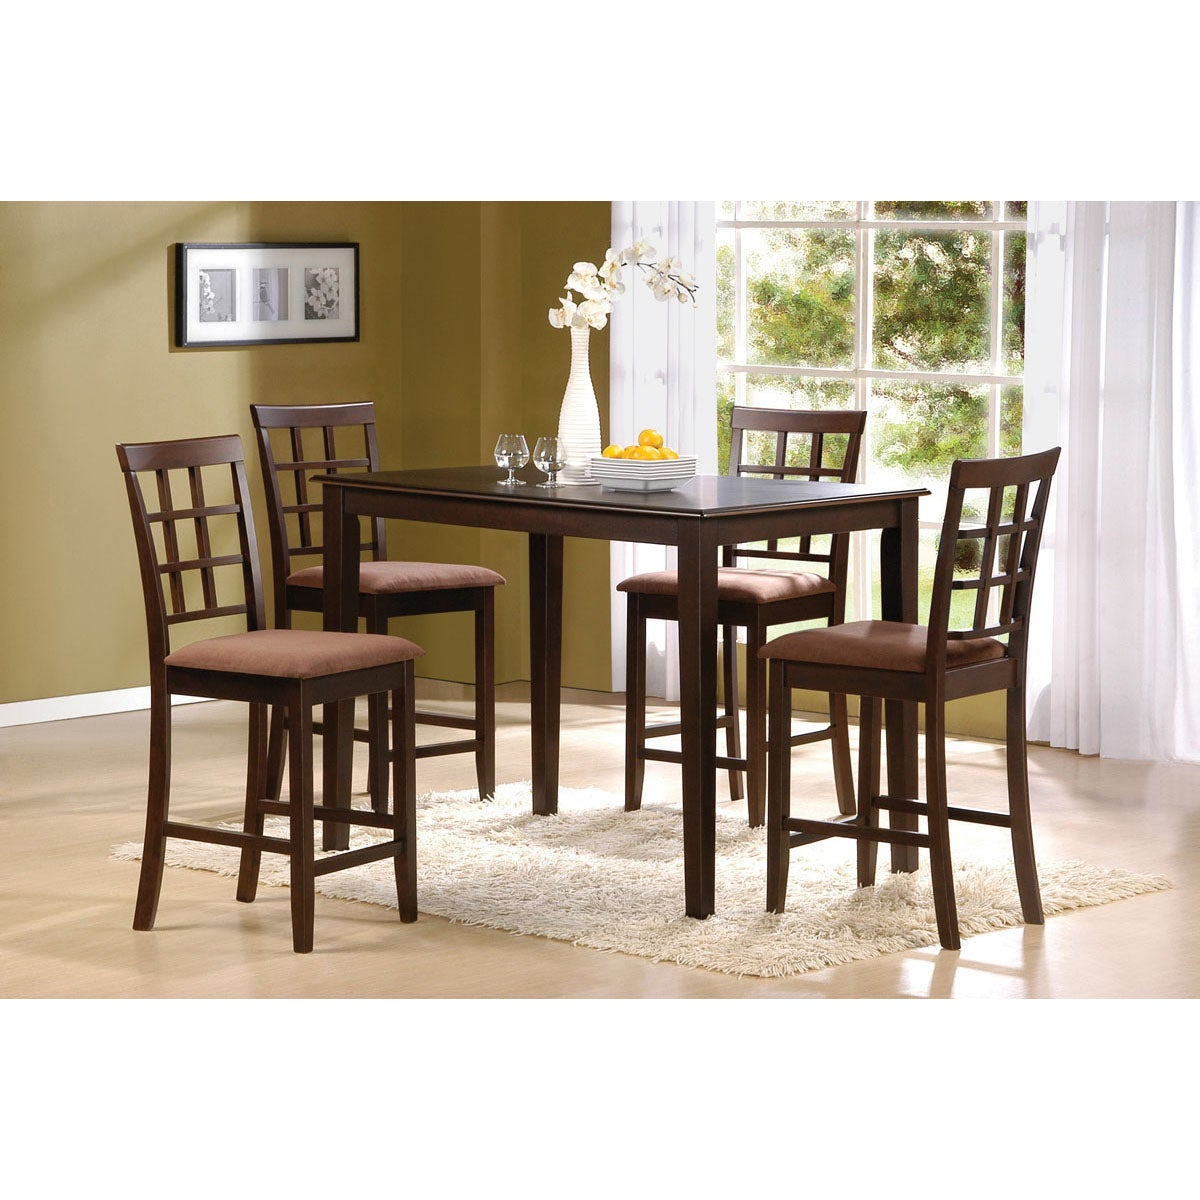 Cardiff 5 Piece Espresso Finish Pack Counter Height Dining Table Set - Thumbnail 0